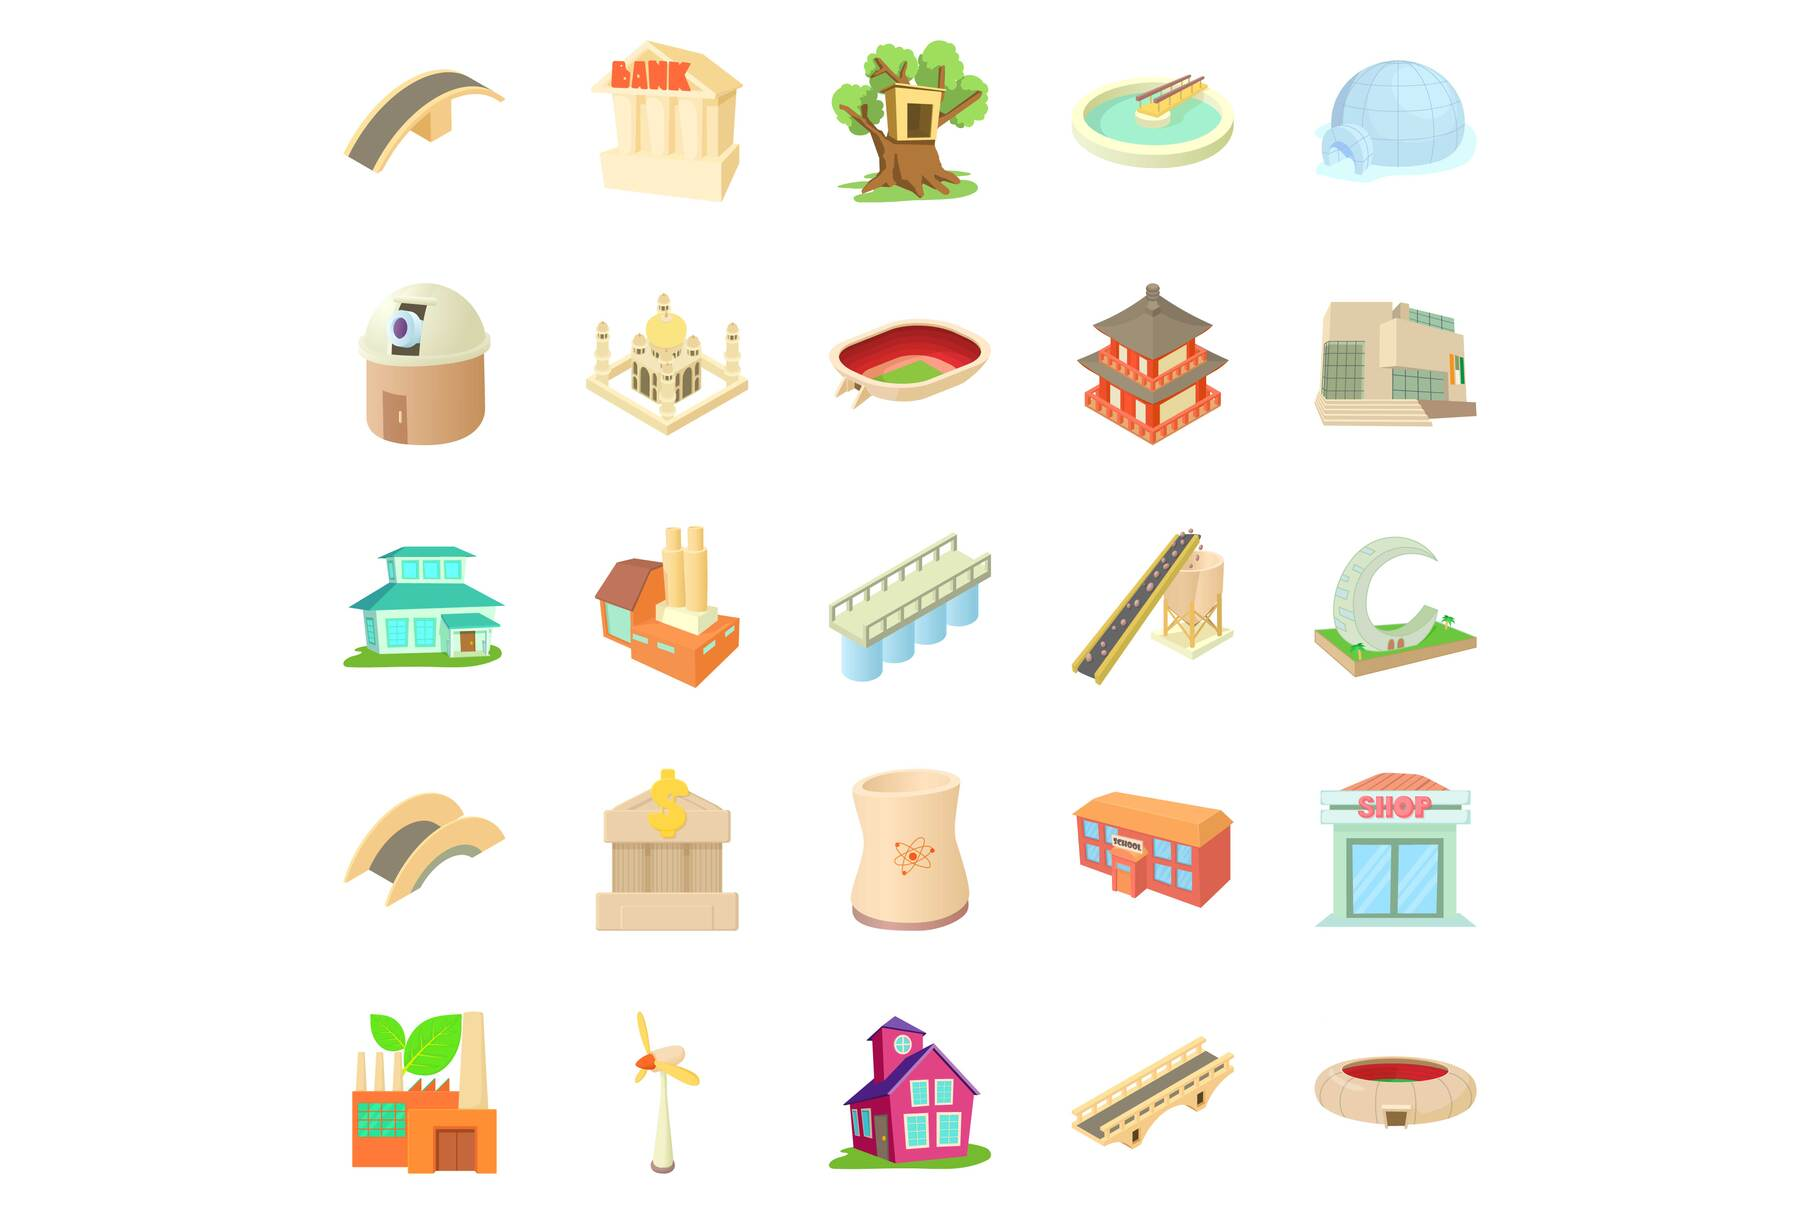 Structured icons set, cartoon style example image 1